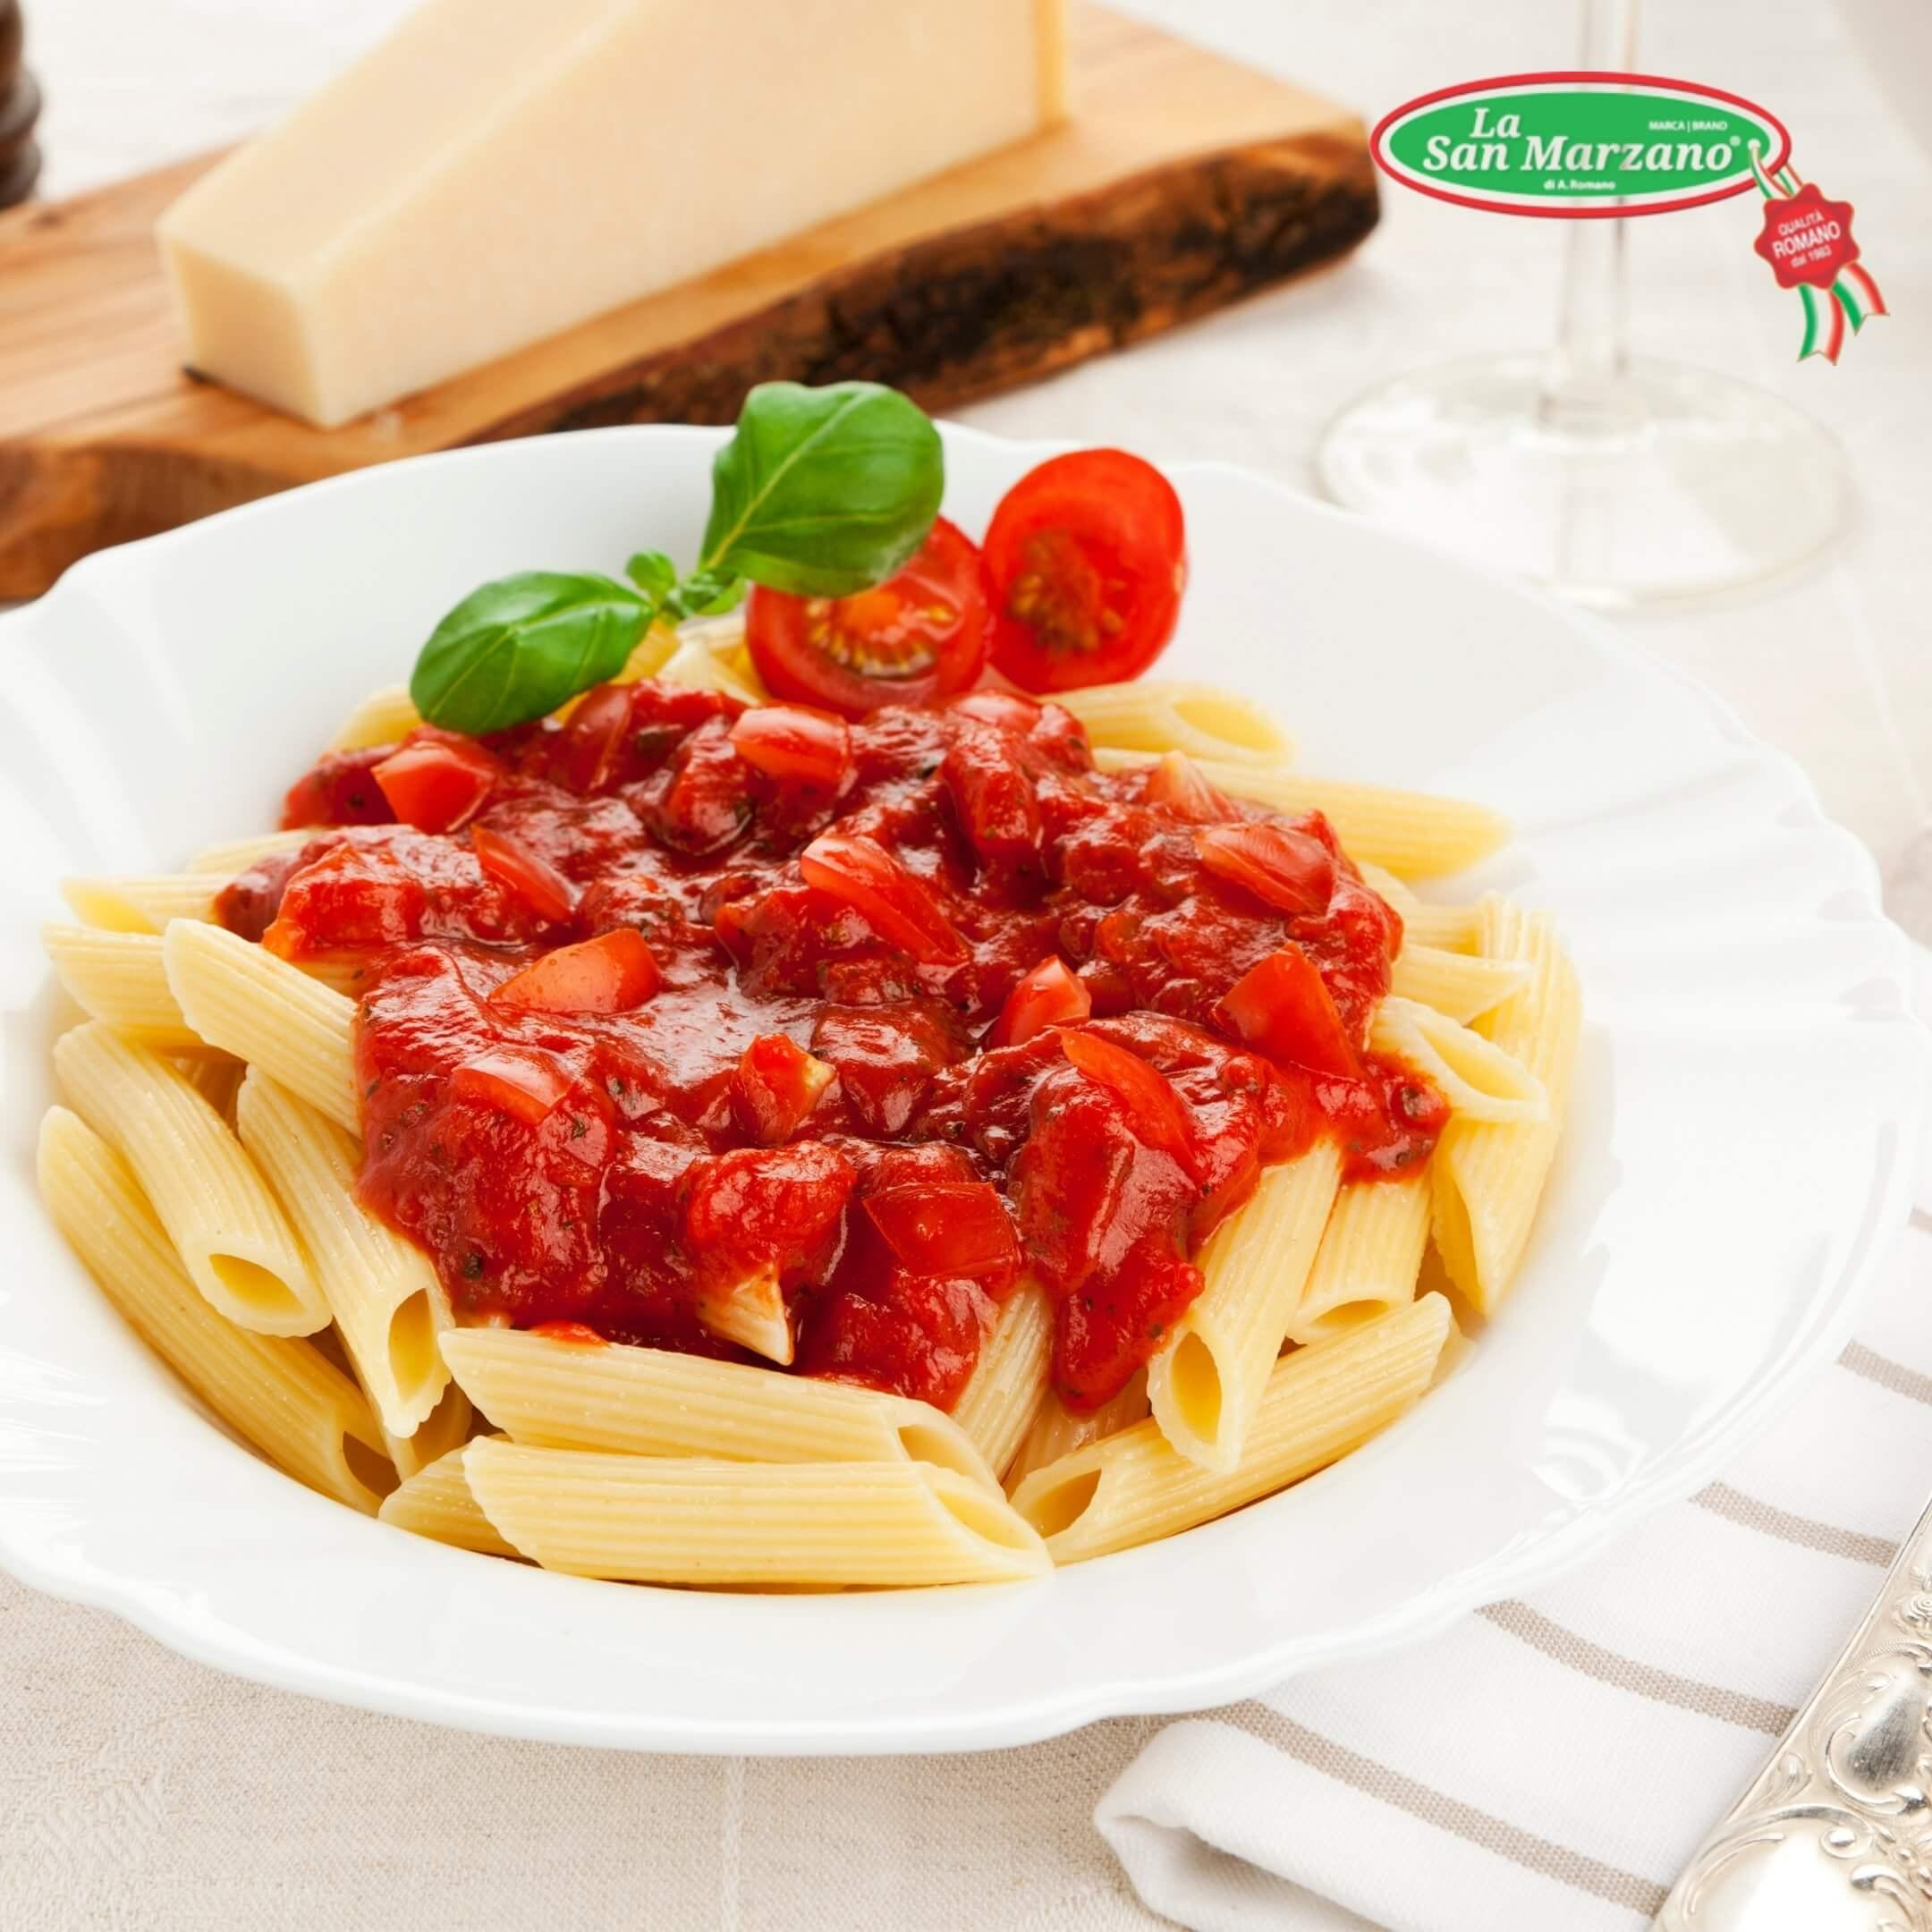 La San Marzano Roasted Garlic Pasta Sauce 24 oz.